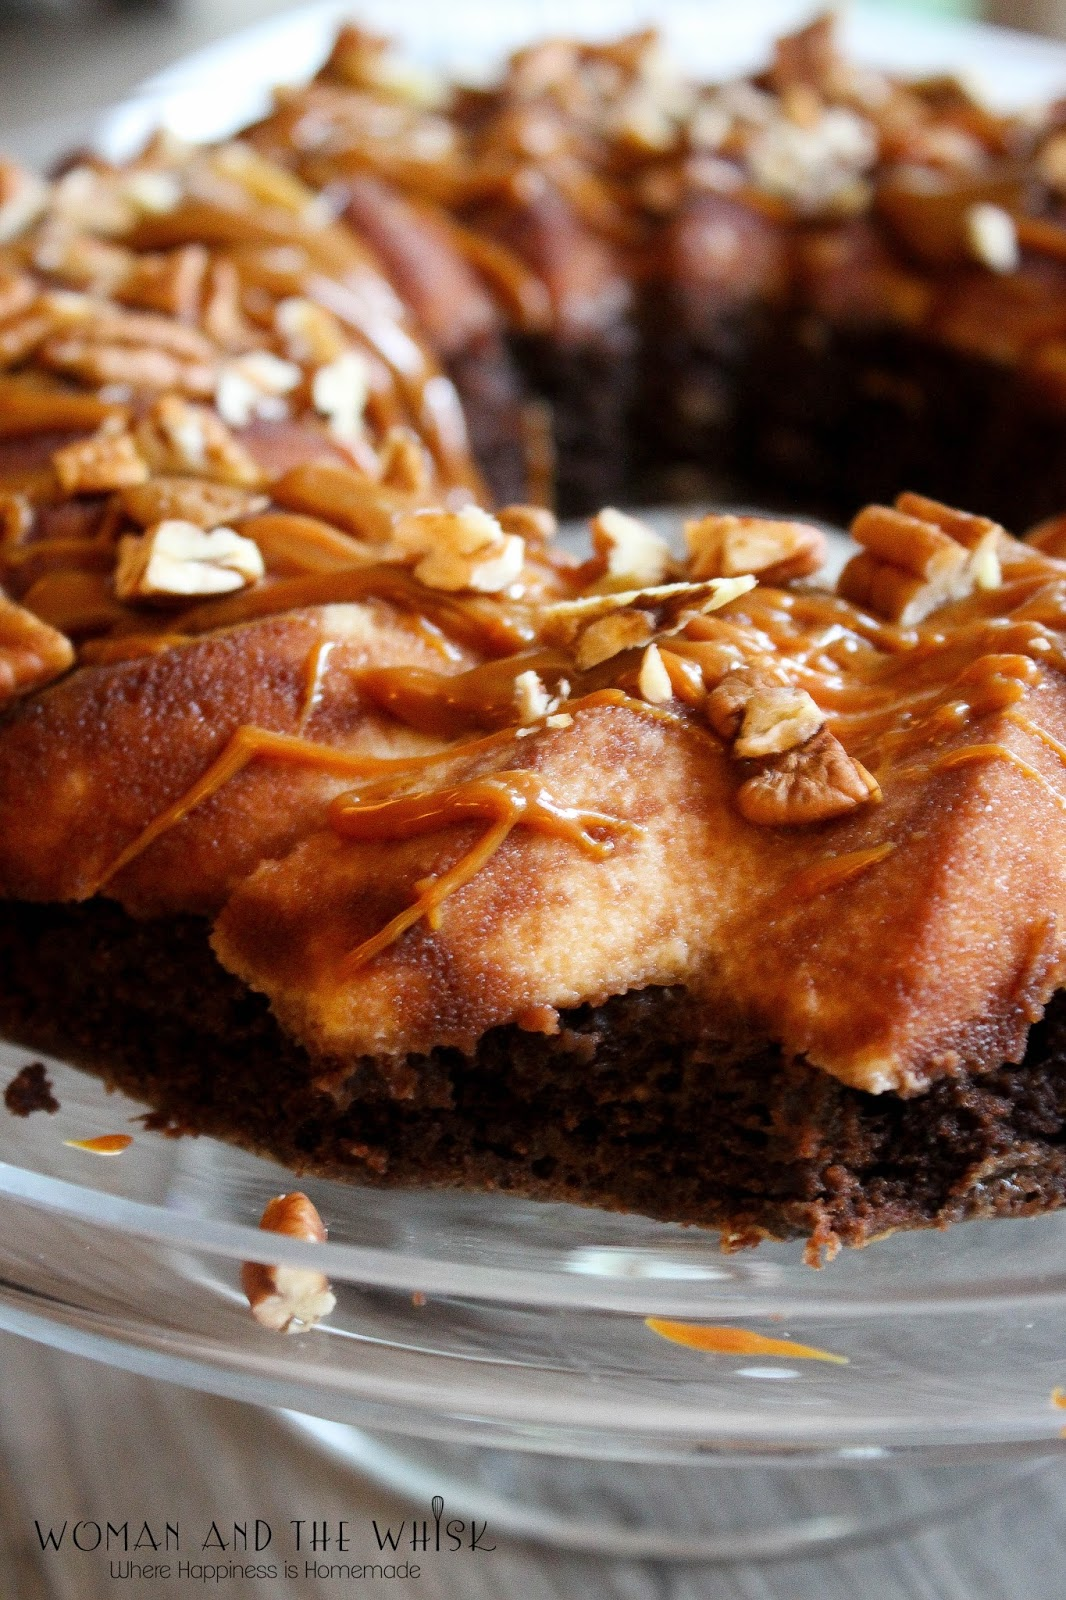 Woman And The Whisk Mexican Chocolate Flan Cake